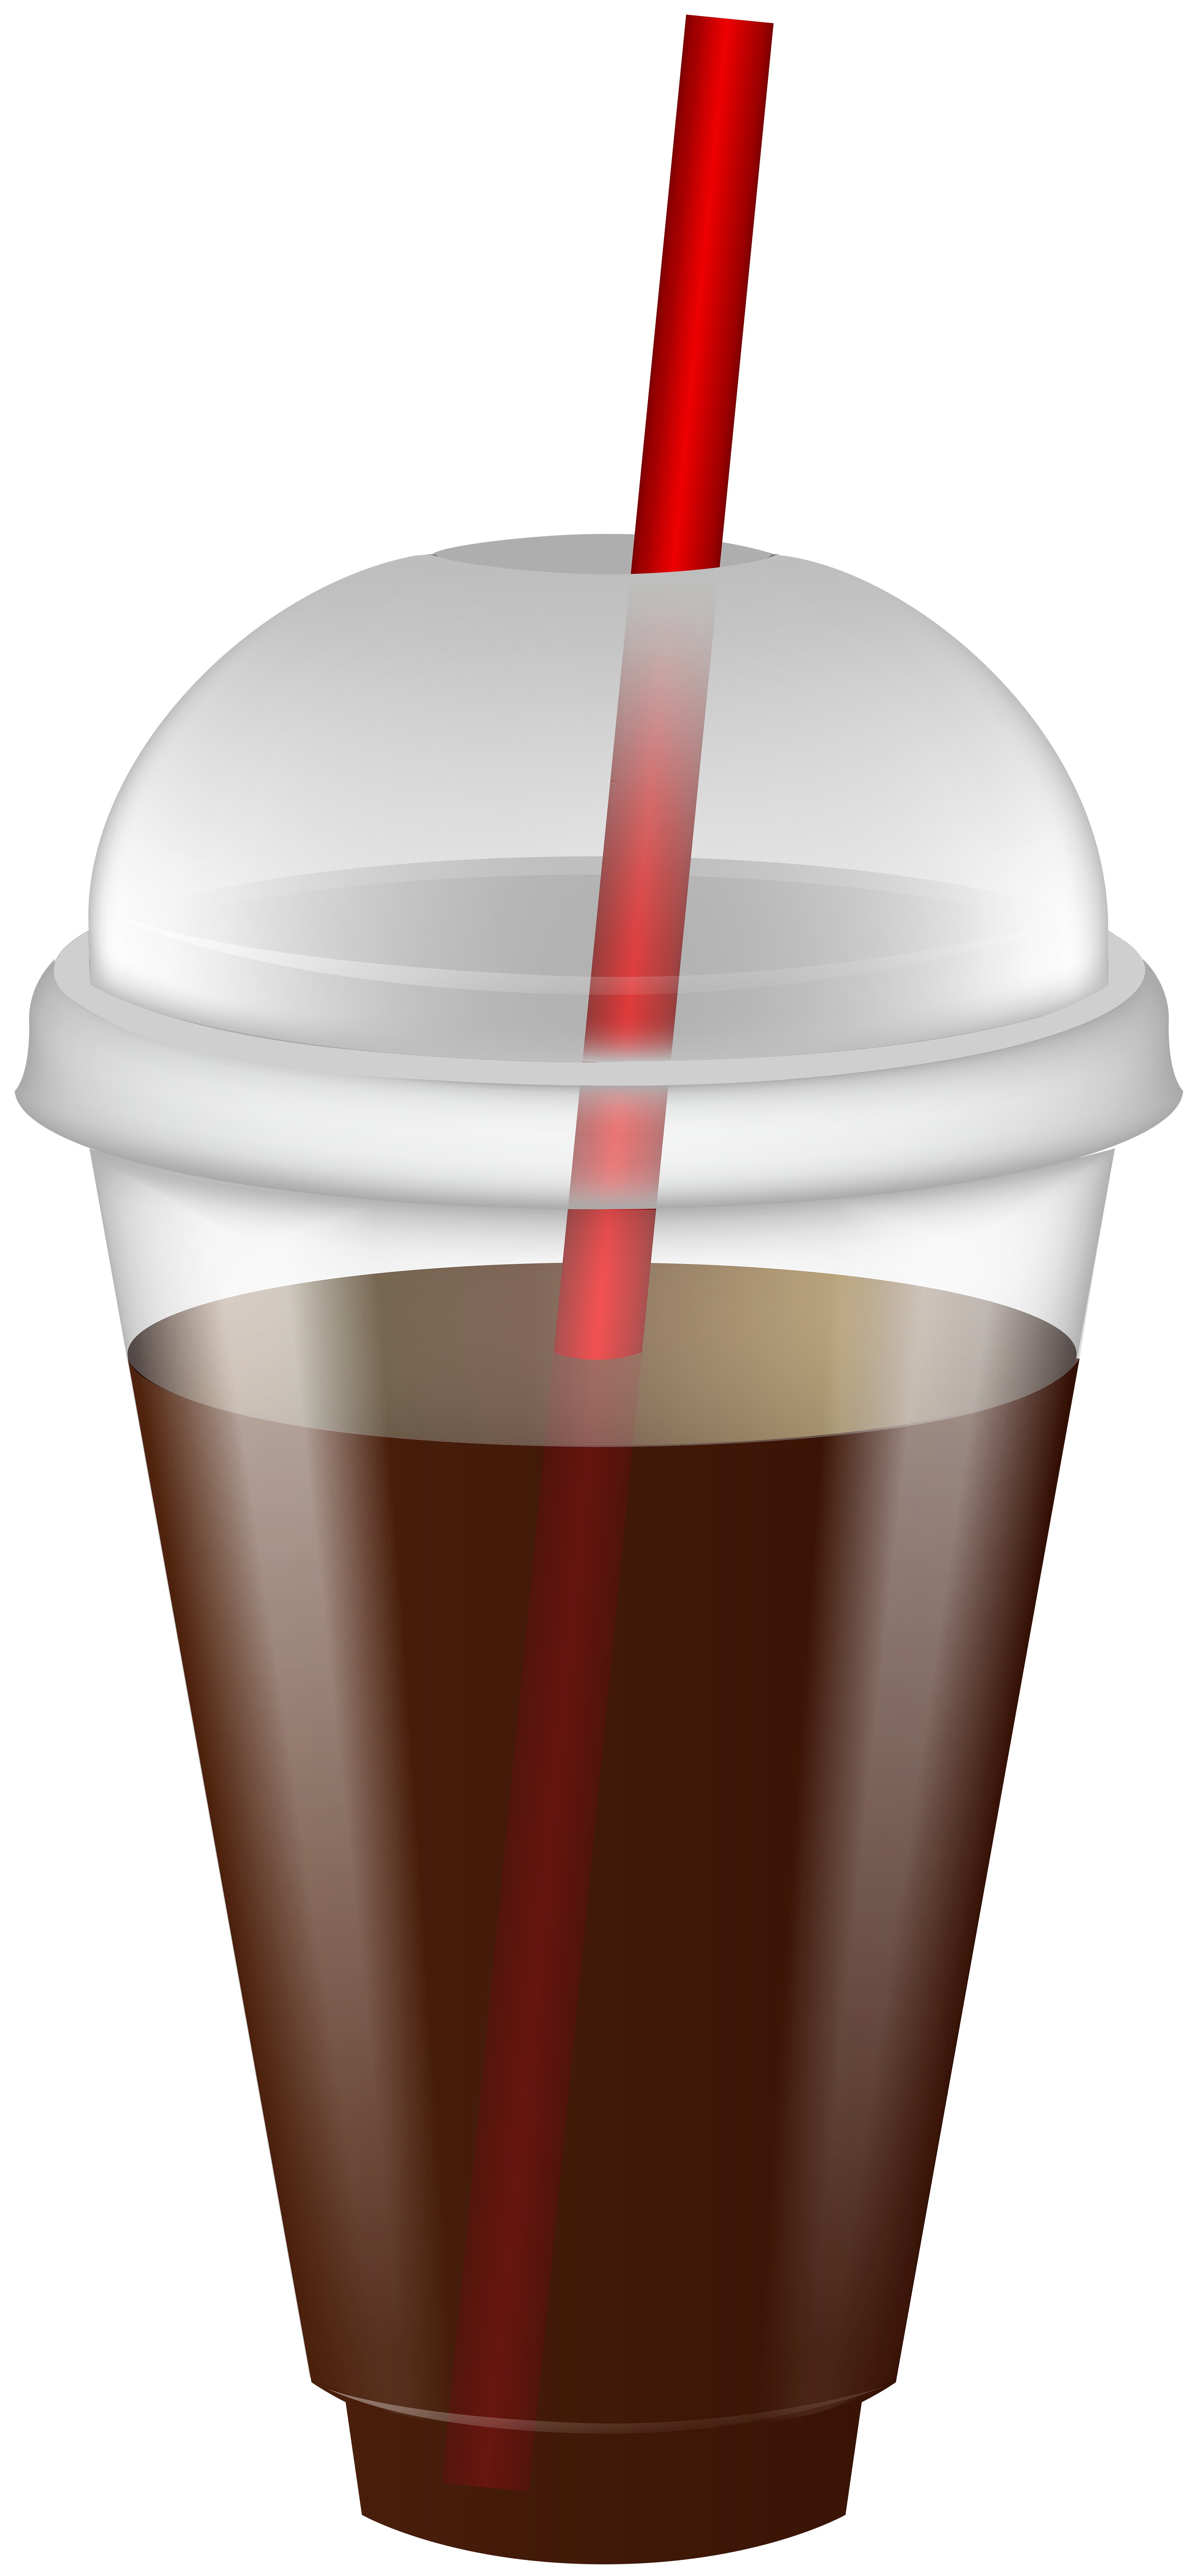 Plastic cup lid and straw clipart png transparent